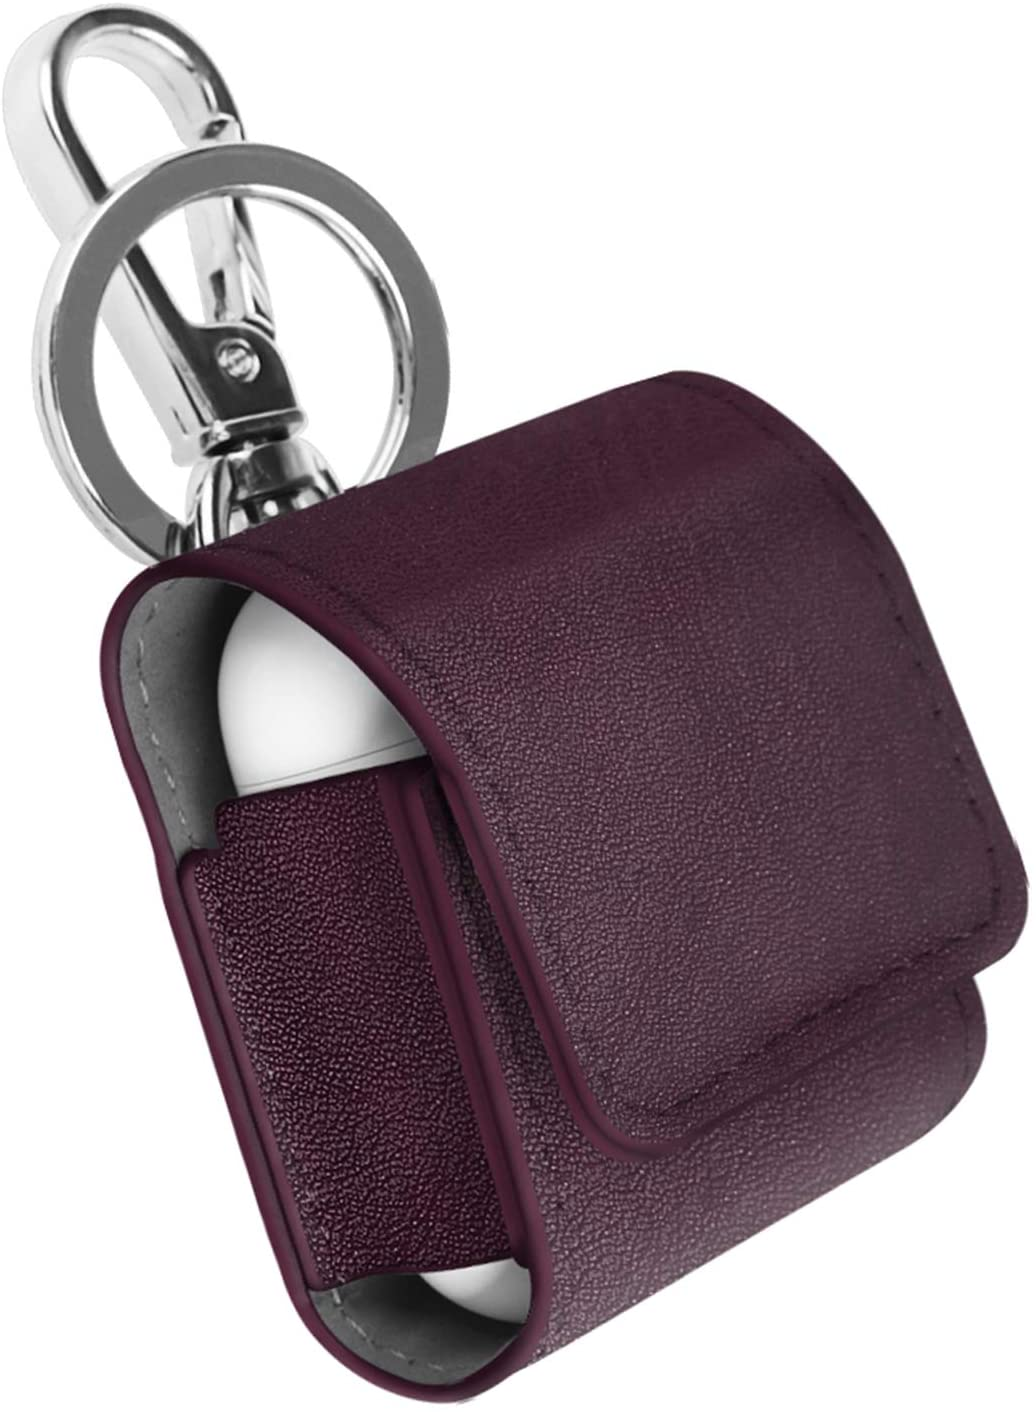 Fintie Case for AirPods, Premium PU Leather Magnet Closure Protective Portable Cover Skin with Metal Clasp and Keychain for AirPods 1 and AirPods 2 Charging Case, Burgundy